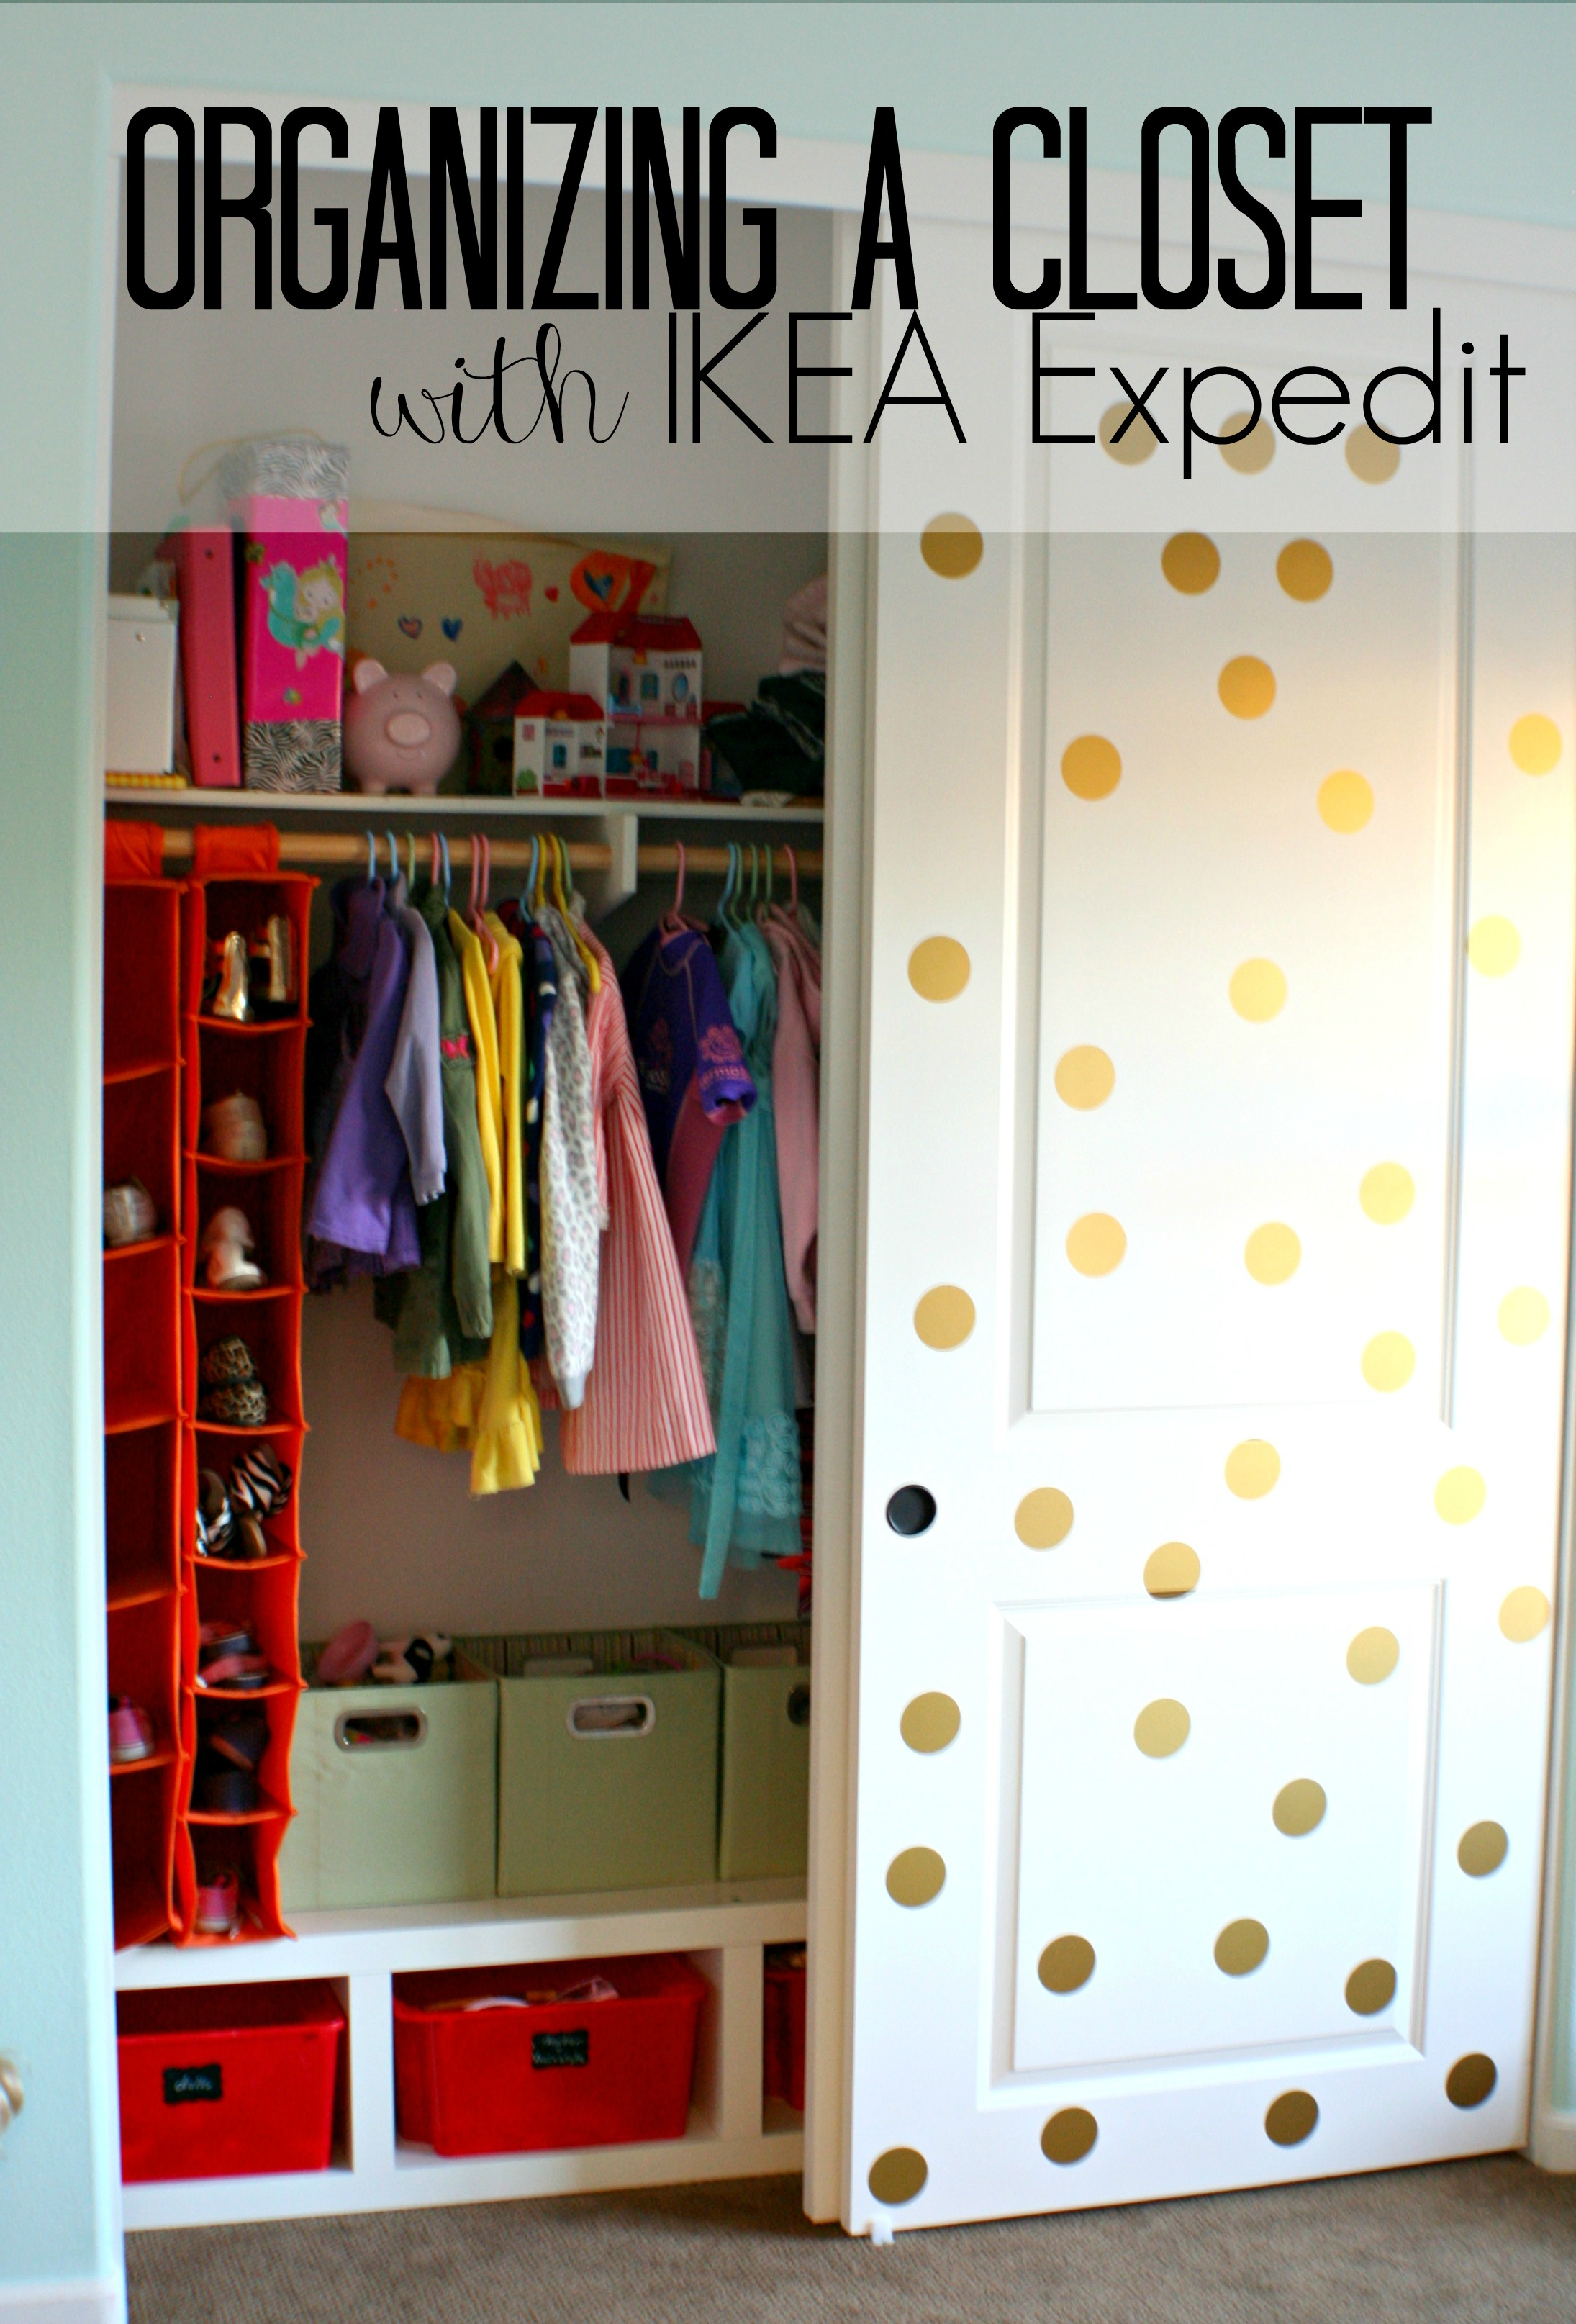 cypress small closet organizing linen how alejandratv ideas organize a blog video to your for